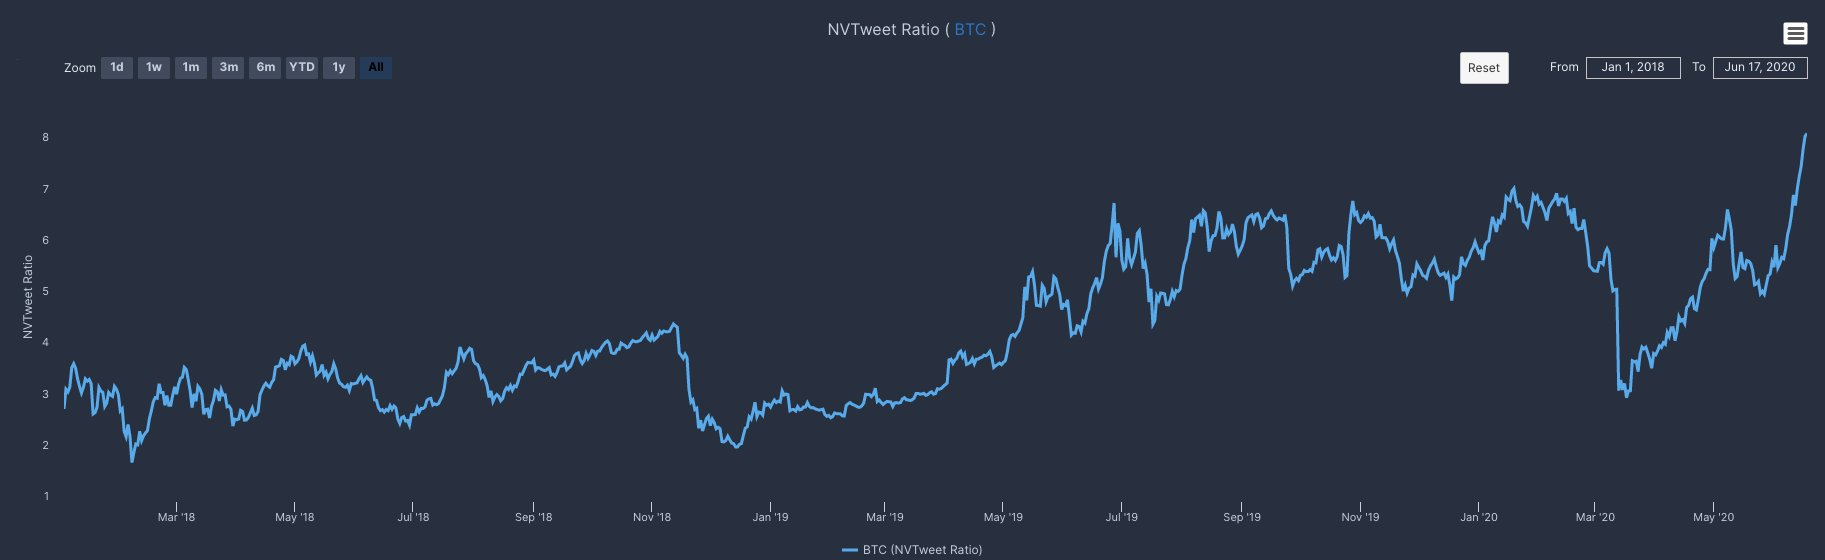 NVTweet analysis for Bitcoin by crypto sentiment and social media data firm The TIE (@TheTIEIO on Twitter).